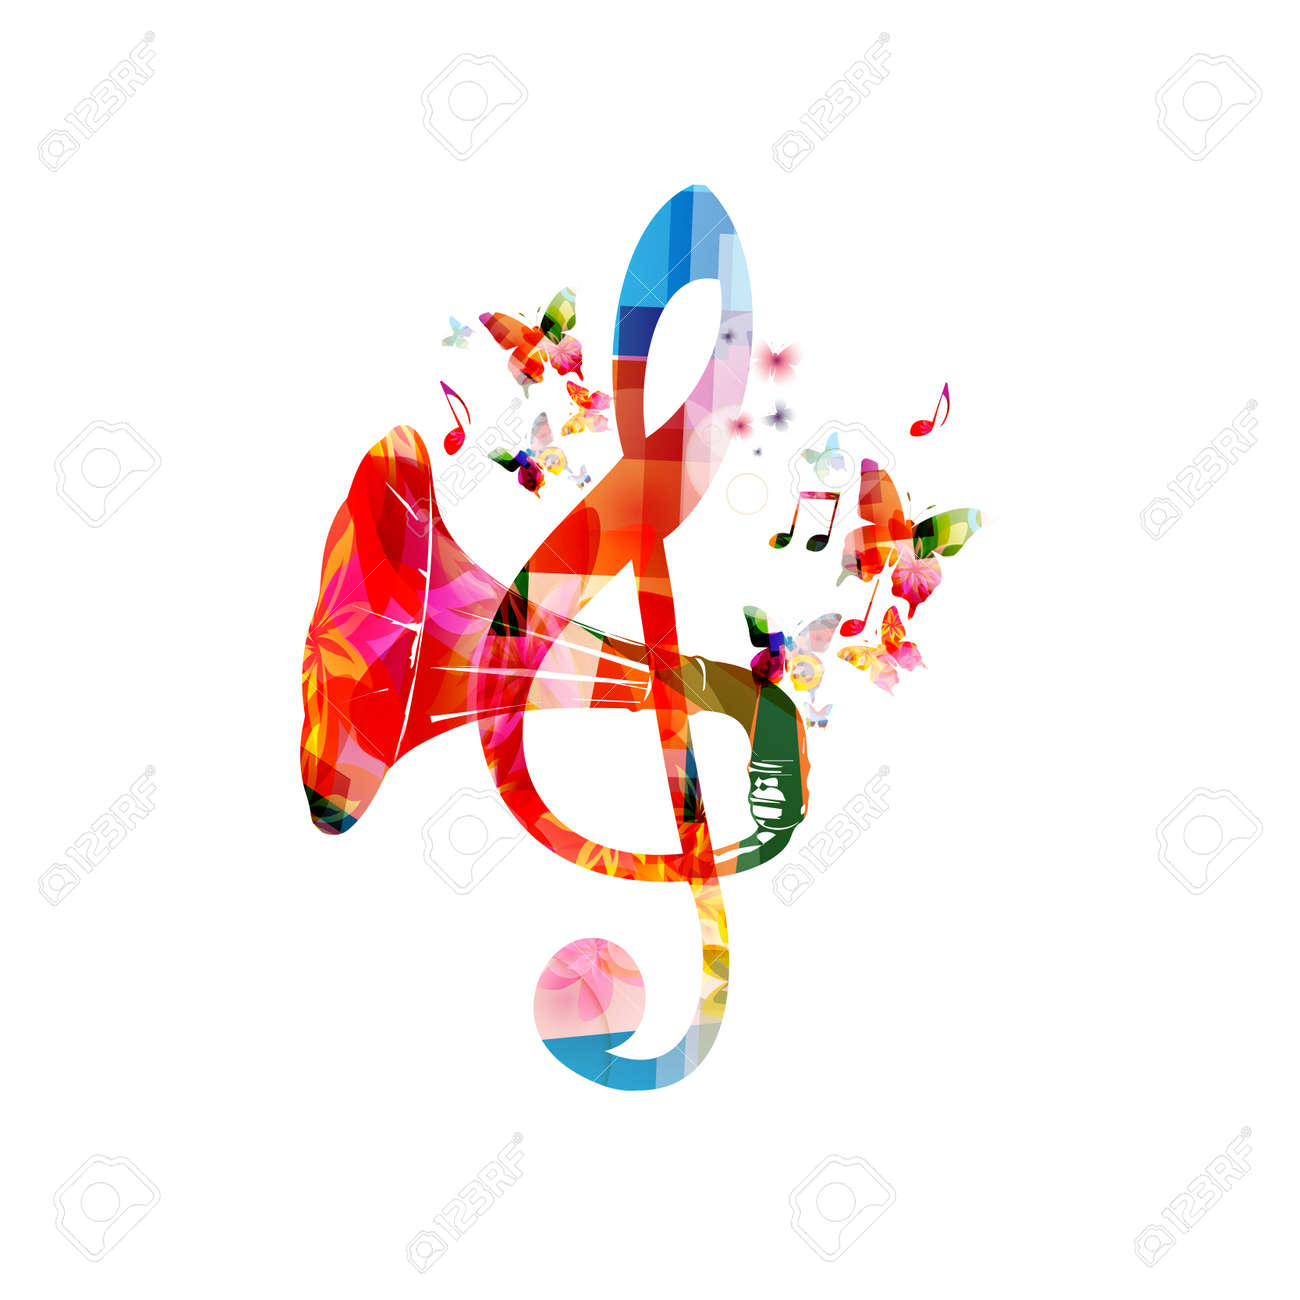 Colorful G-clef with gramophone horn isolated - 126504370